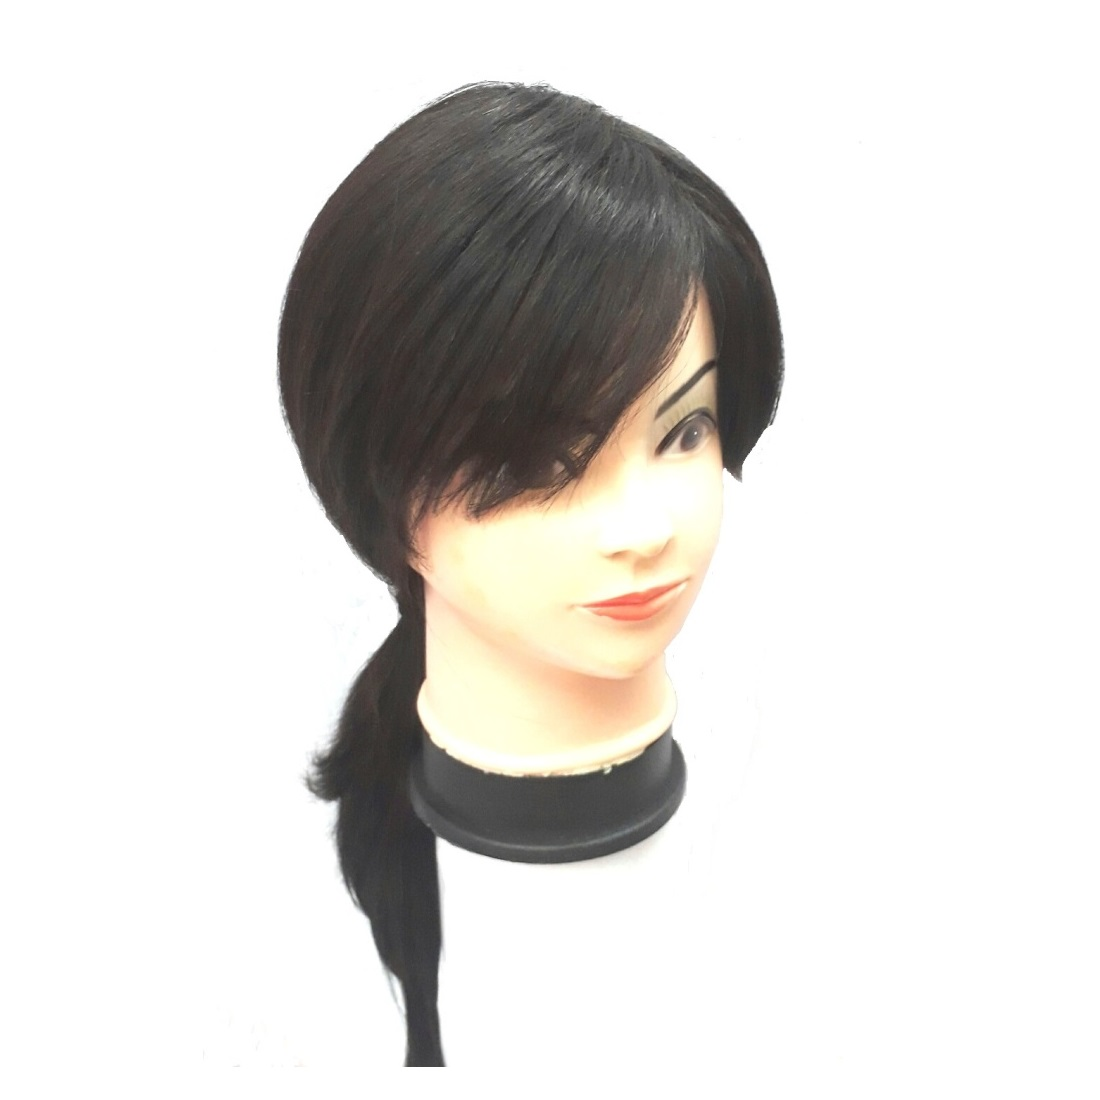 Image for Cancer patients wigs